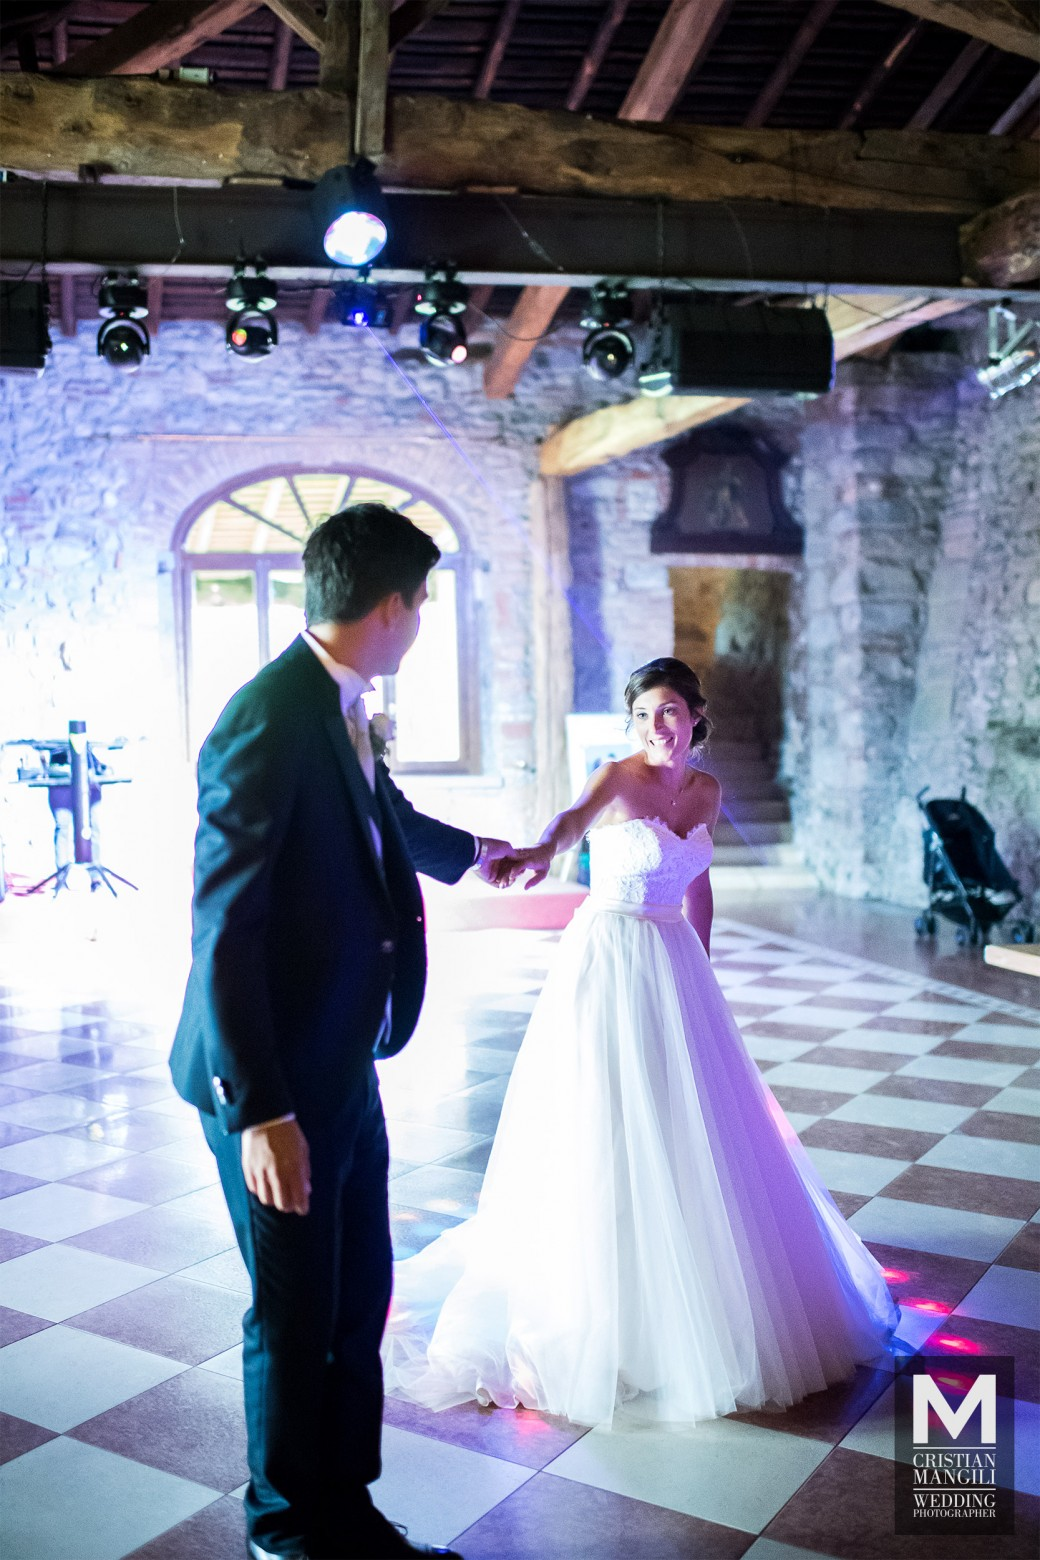 wedding-dance-in-italy-02